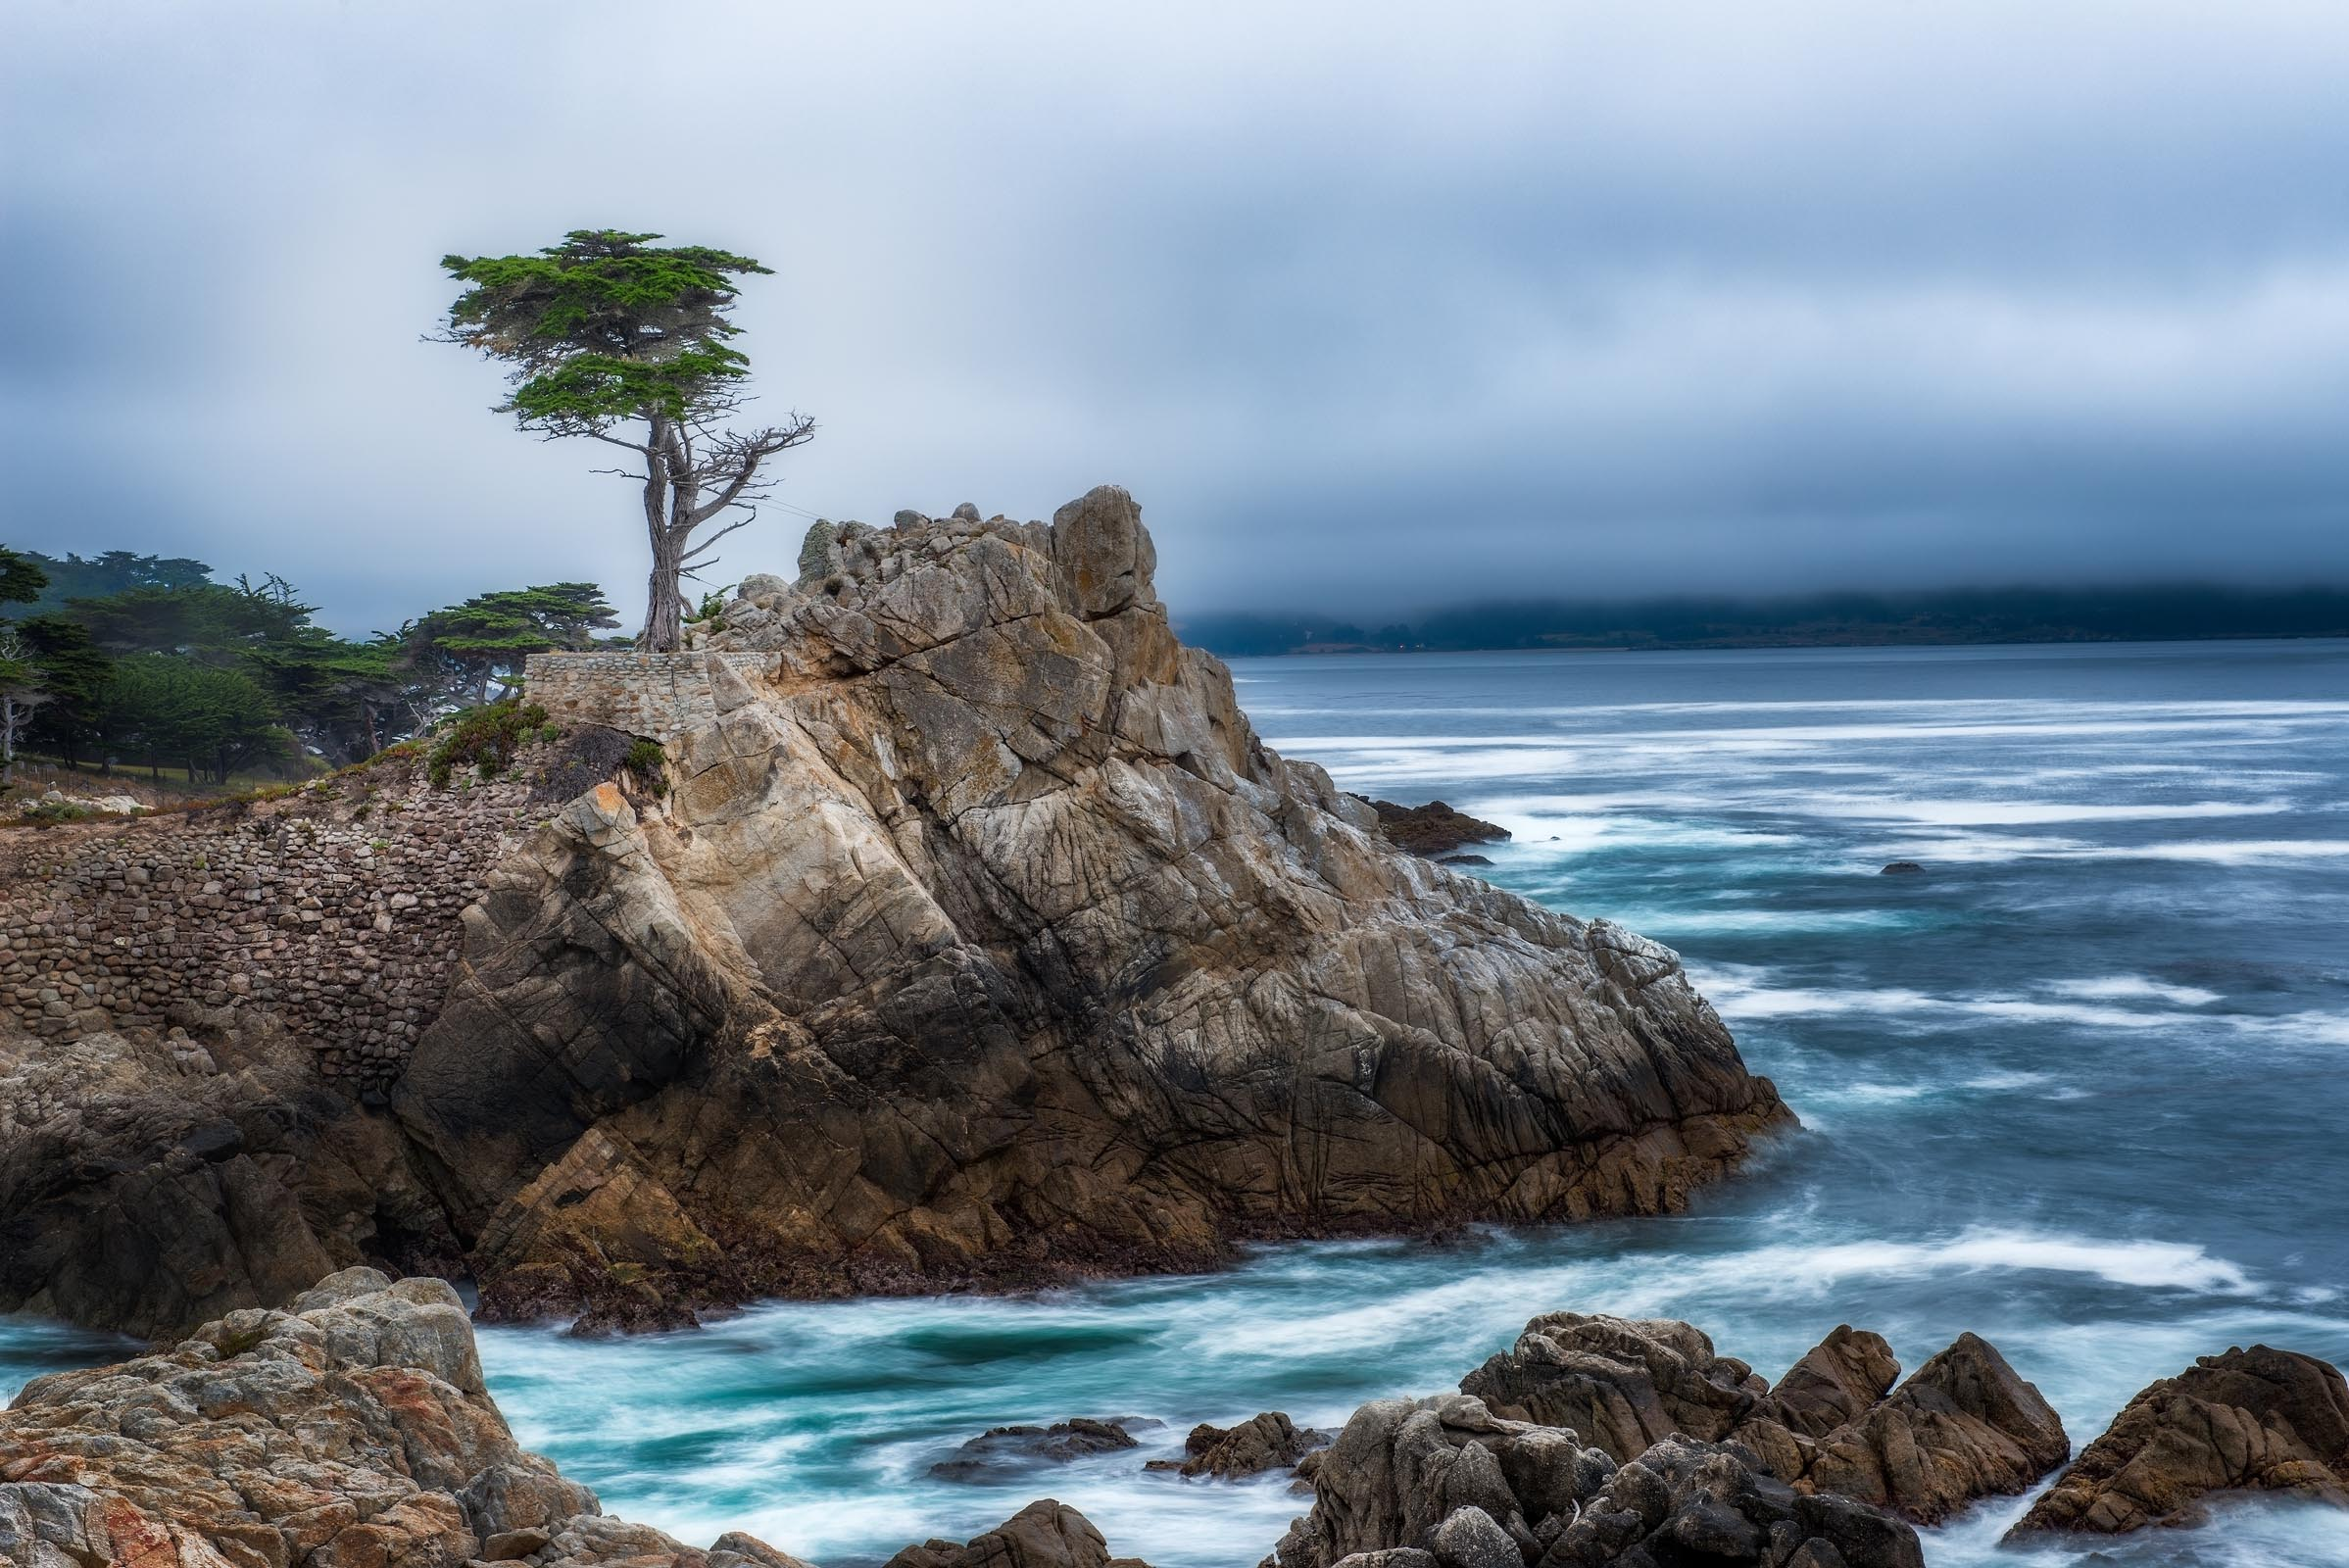 Photograph of Lone Cypress in Pebble Beach, California by Brent Goldman Photography